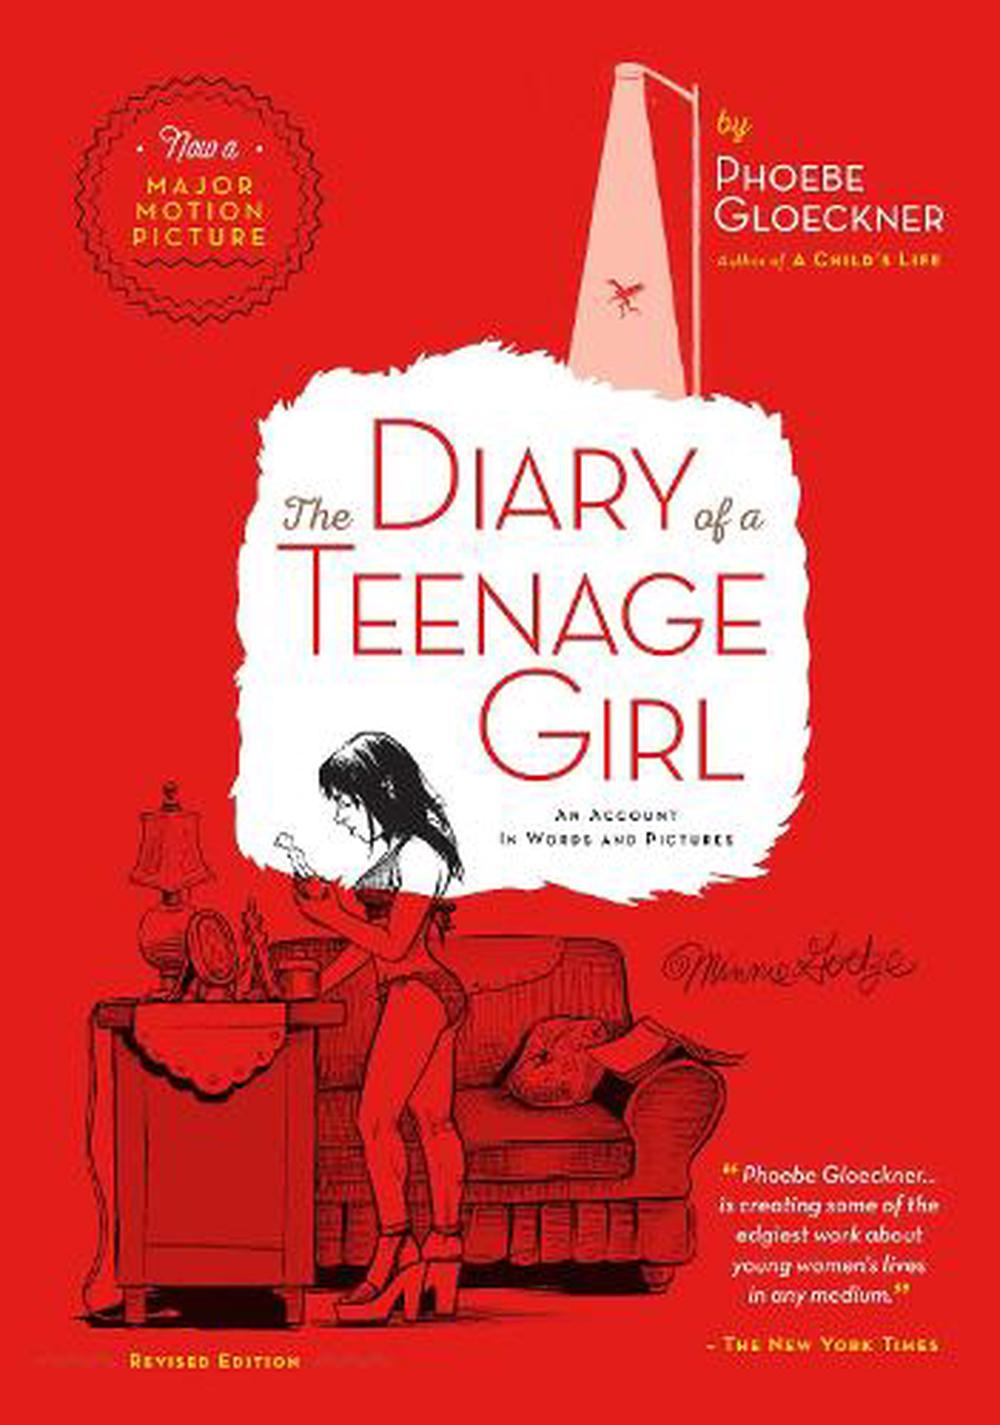 The Diary of a Teenage Girl, Revised Edition: An Account in Words and Pictures